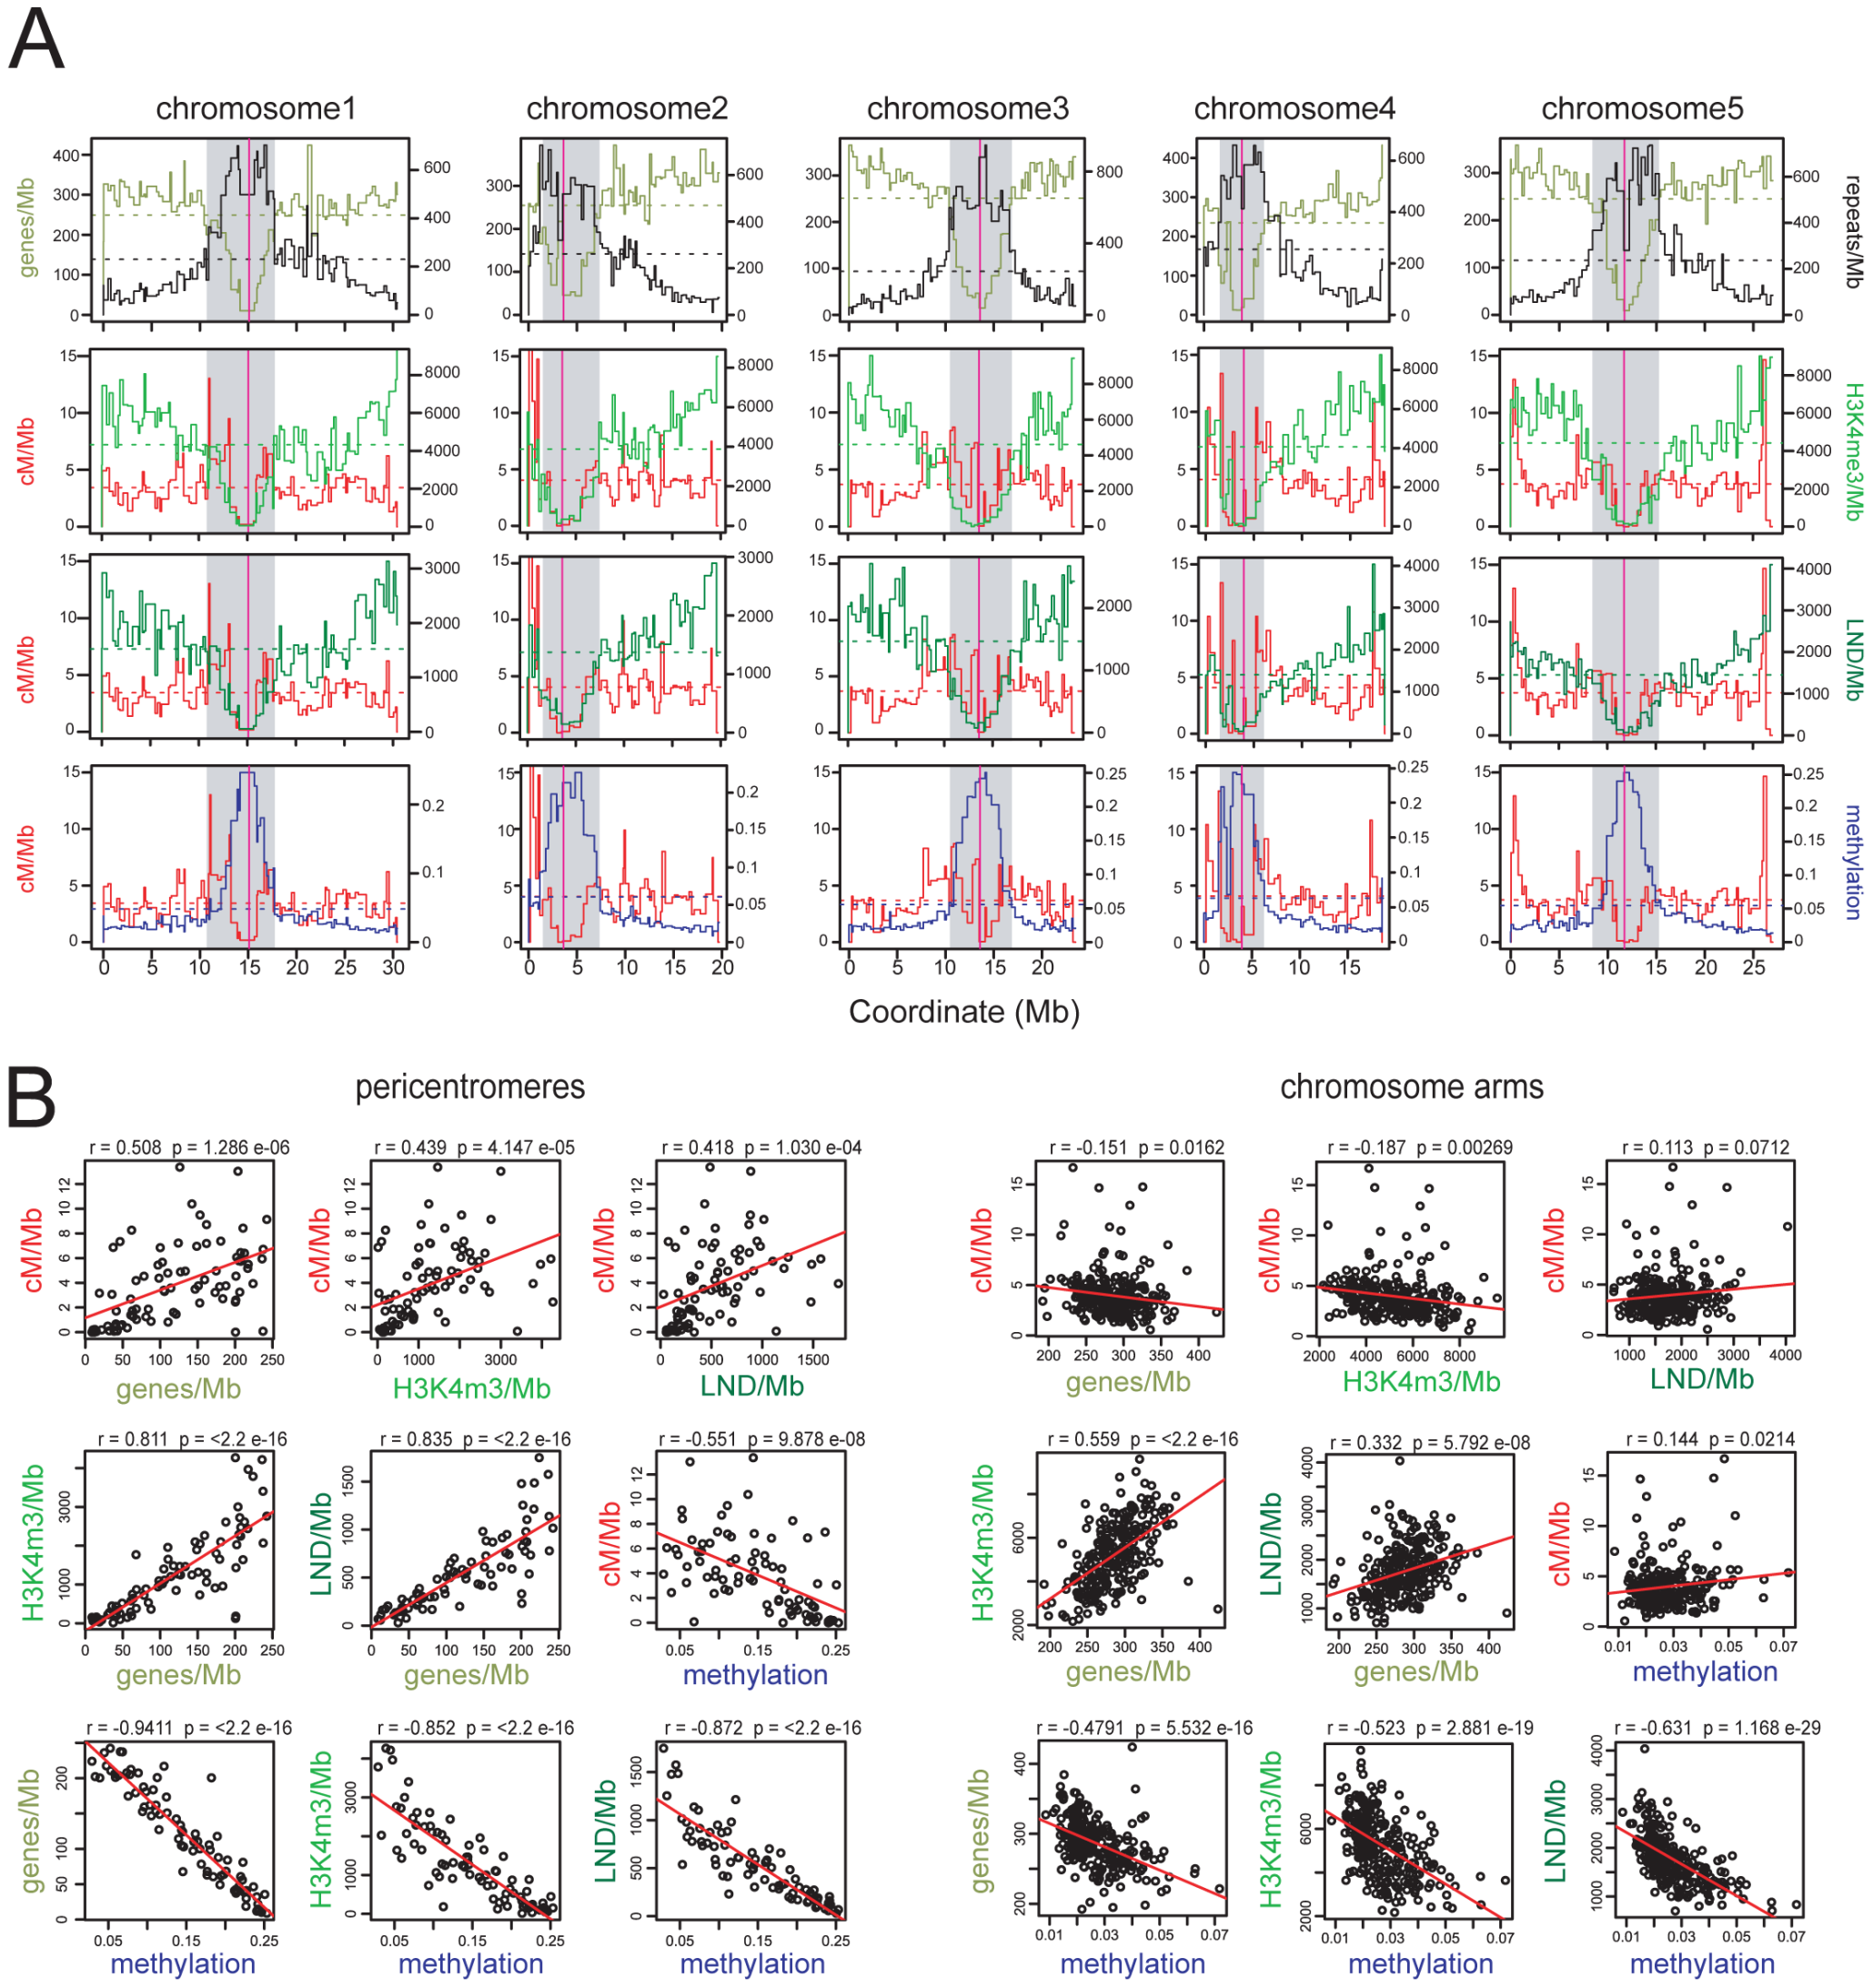 Epigenomic organisation and CO frequency in the <i>A. thaliana</i> genome.